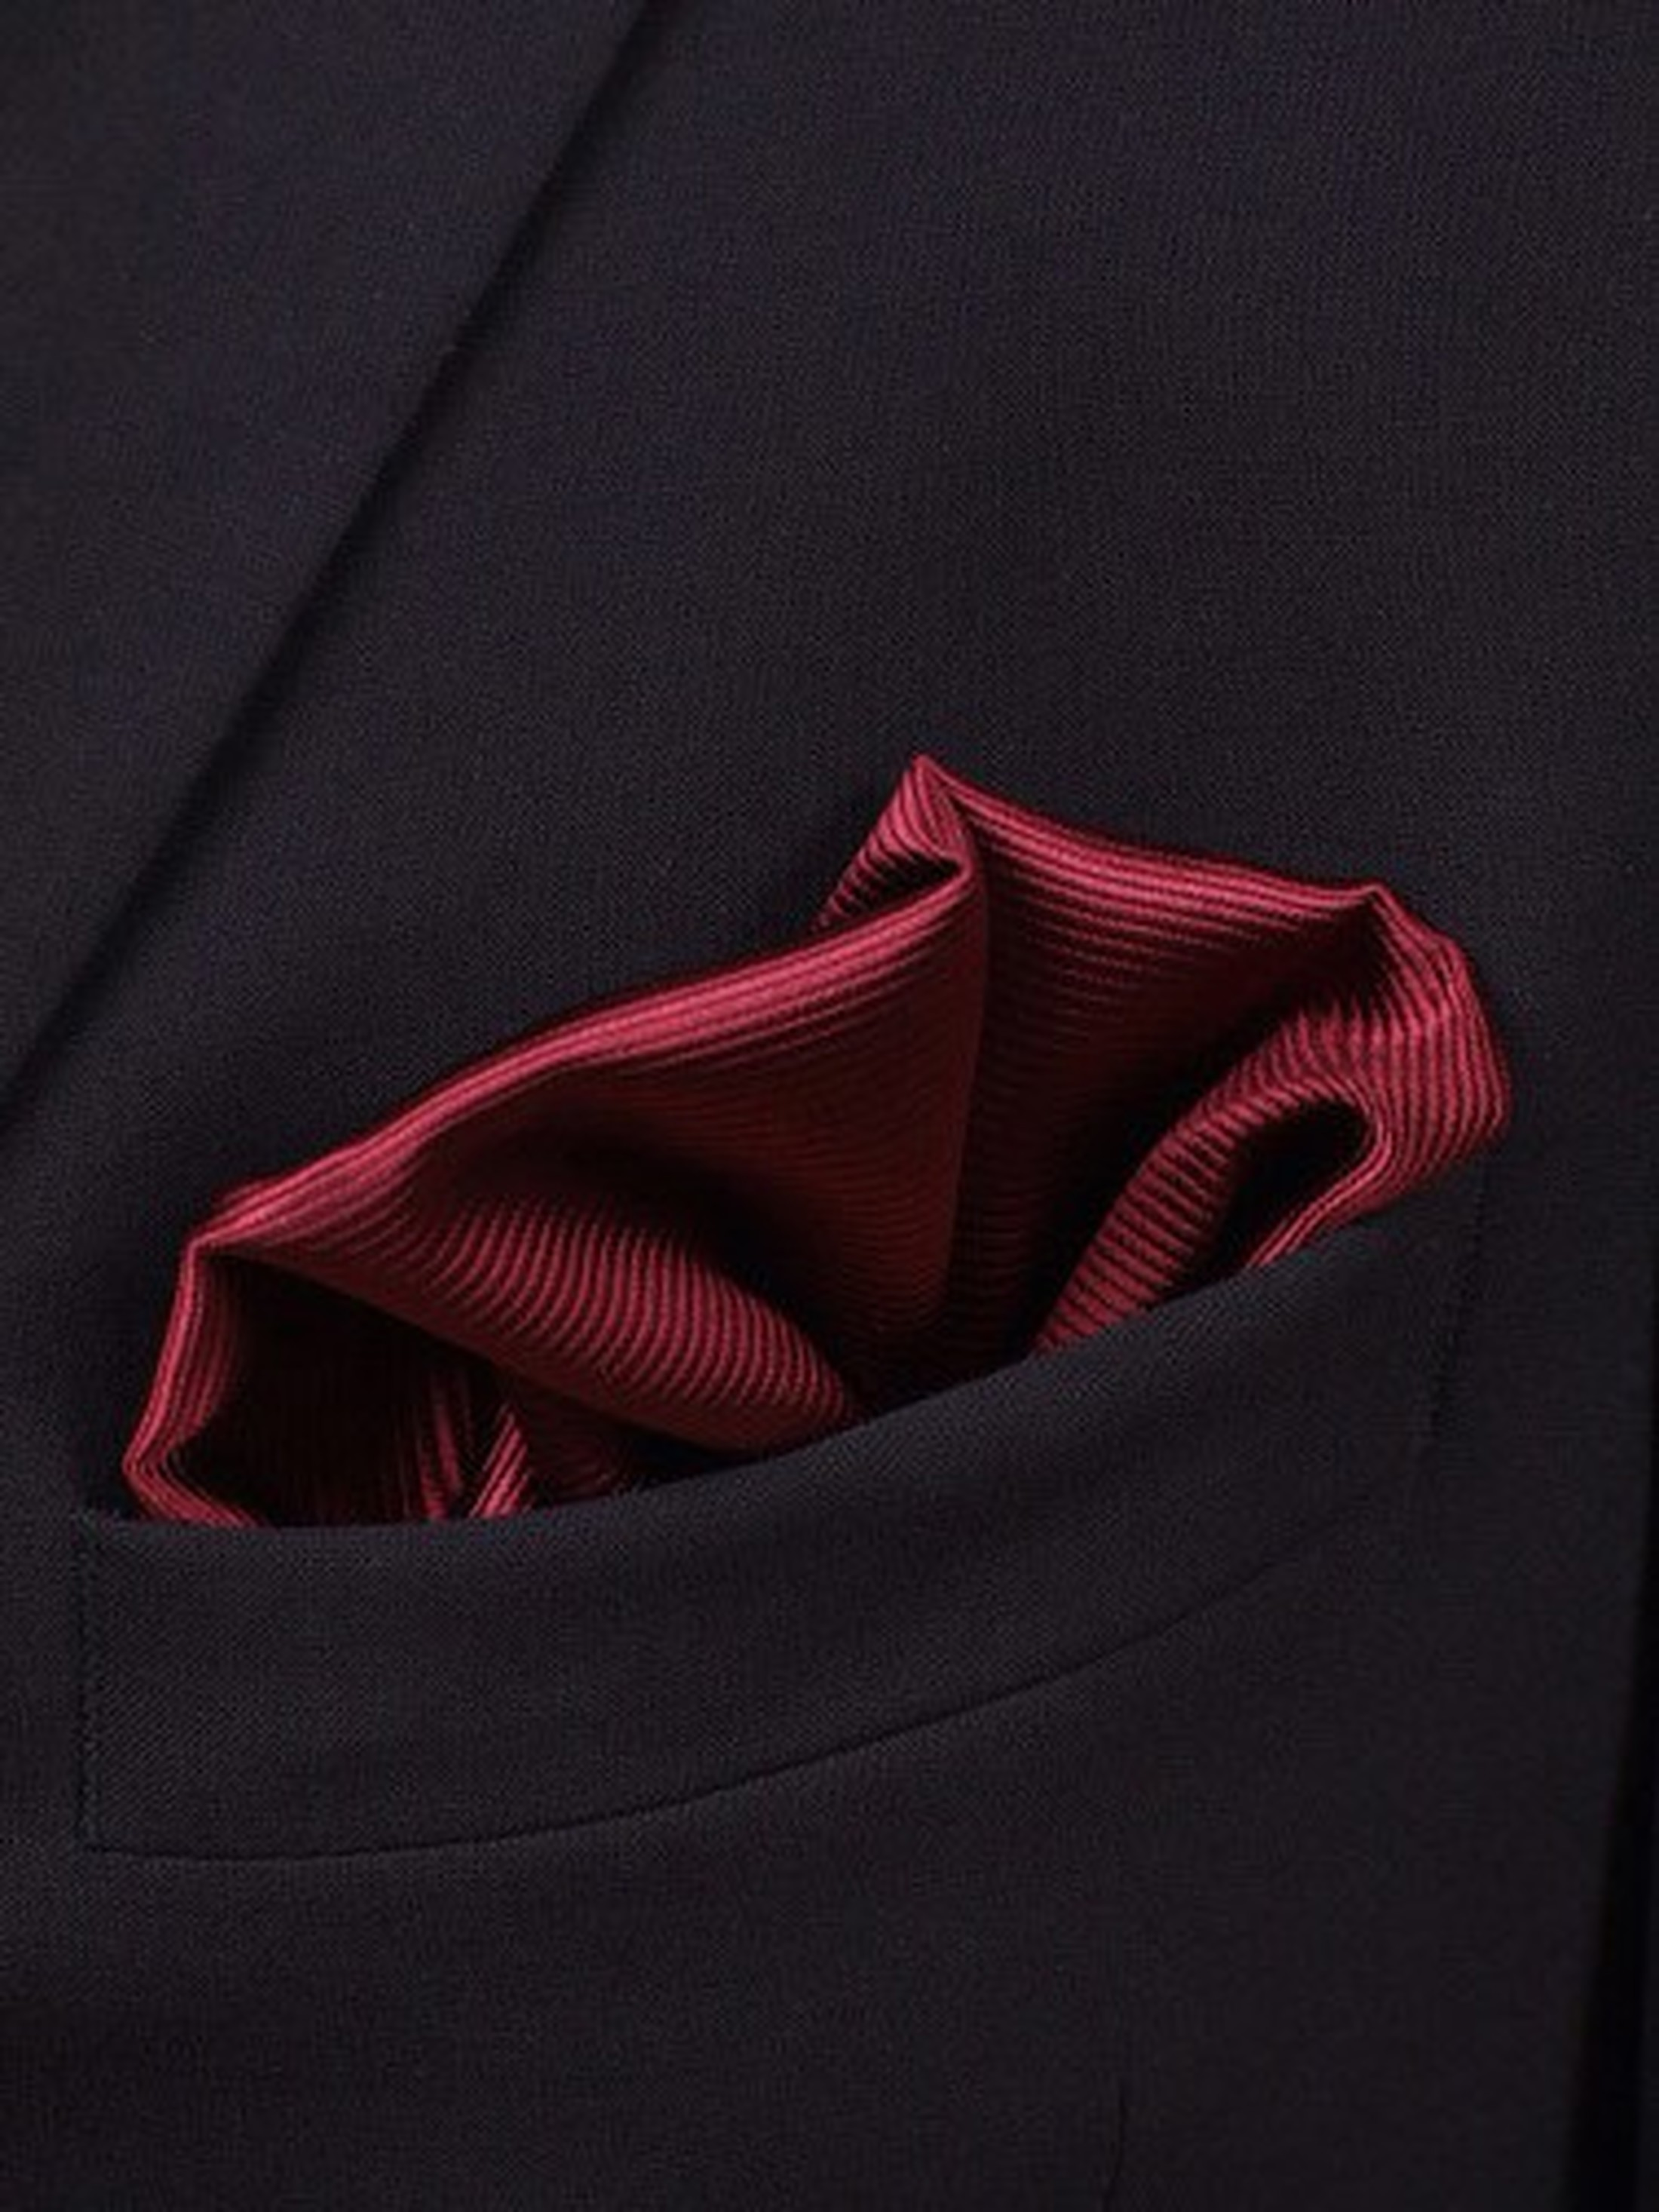 Pocket Square Silk Bordeaux F31 foto 1